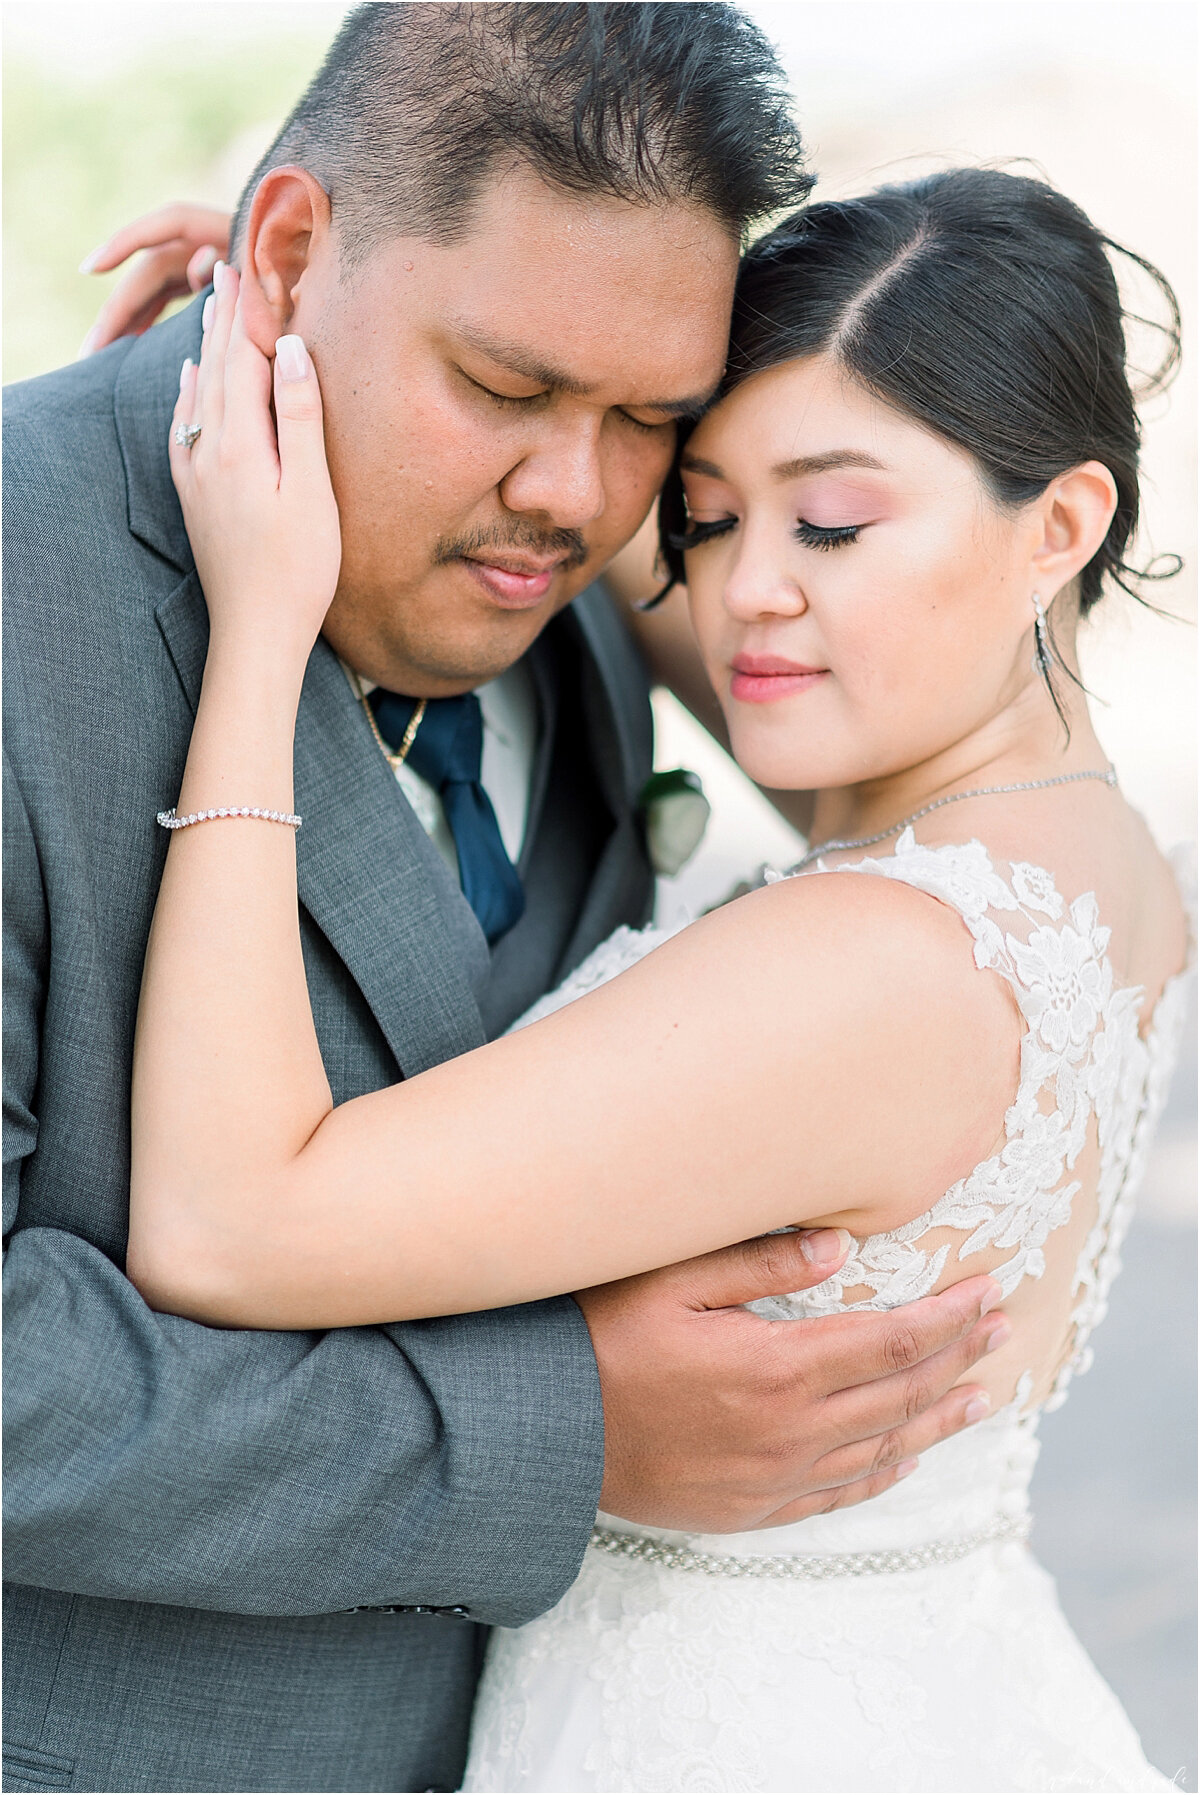 Light and Airy Wedding Photographer Chicago, Furama Chinese Wedding Photographer + Chicago Latino Photography + Naperville Wedding Photographer + Chicago Engagement Photographer + Best Photographer In Chicago_0049.jpg